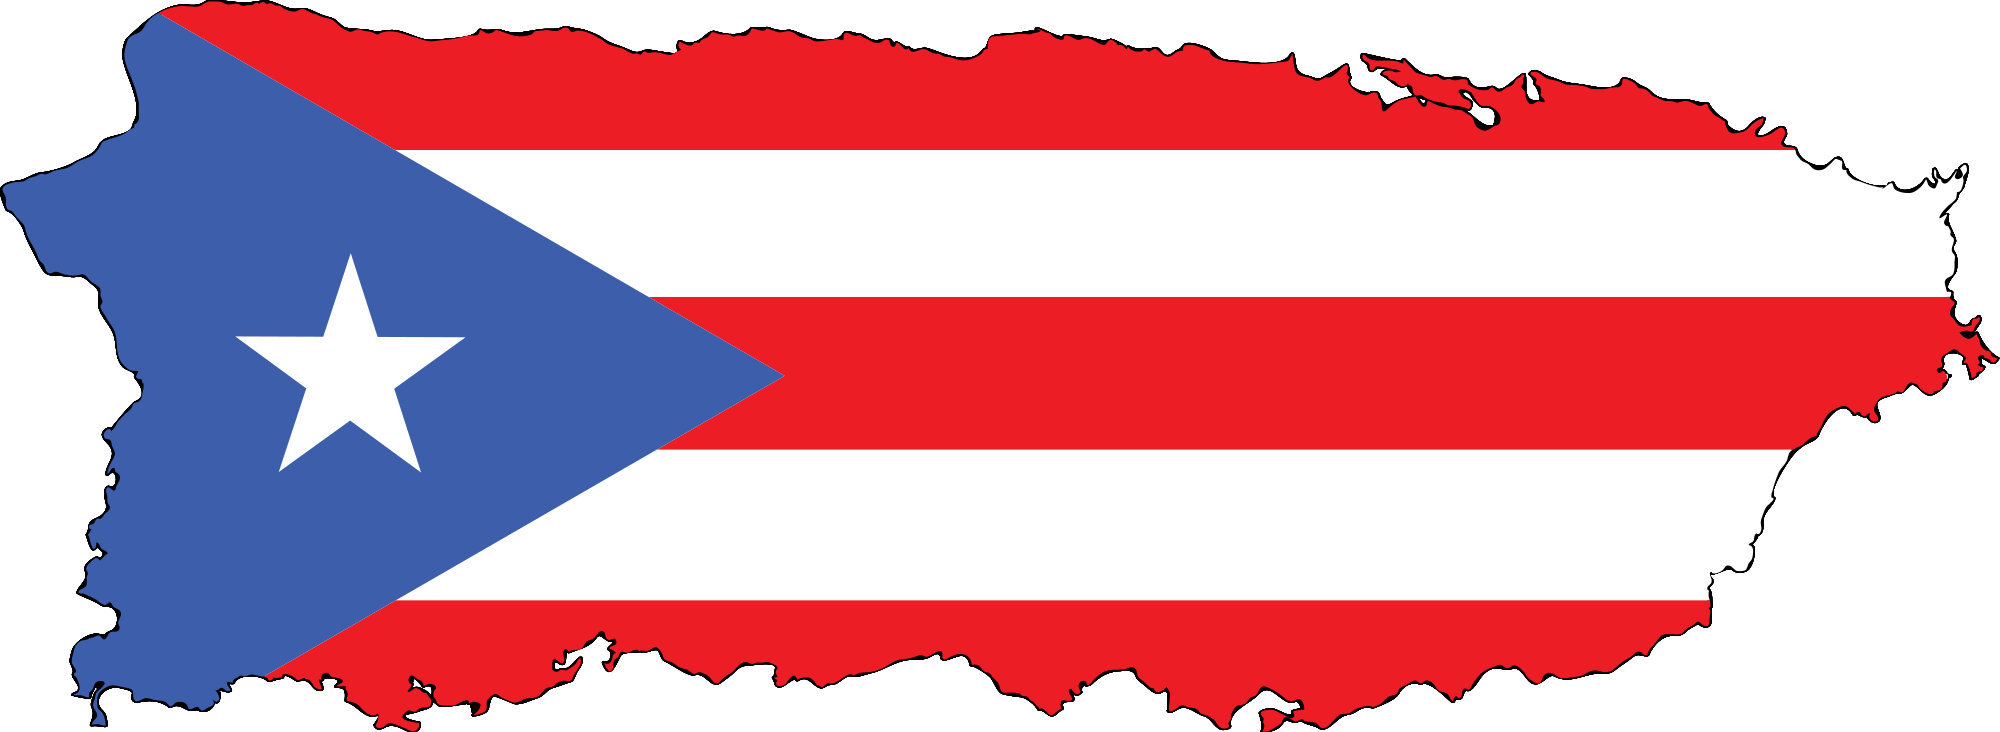 puerto rico map png